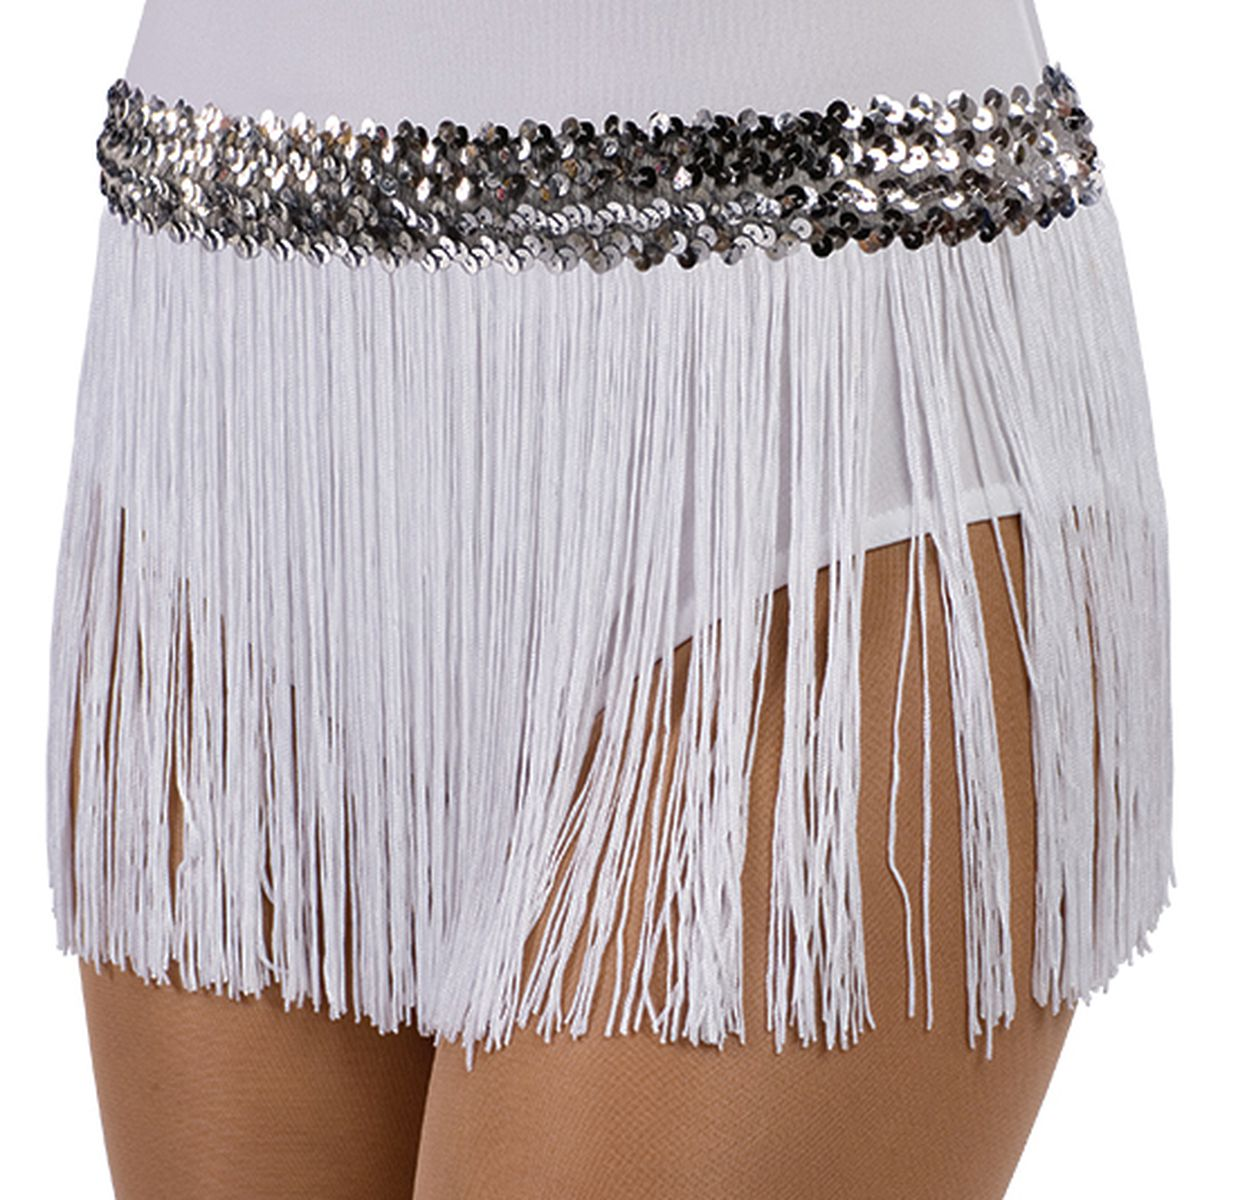 9 IN. FRINGE SKIRT BLACK/BLACK